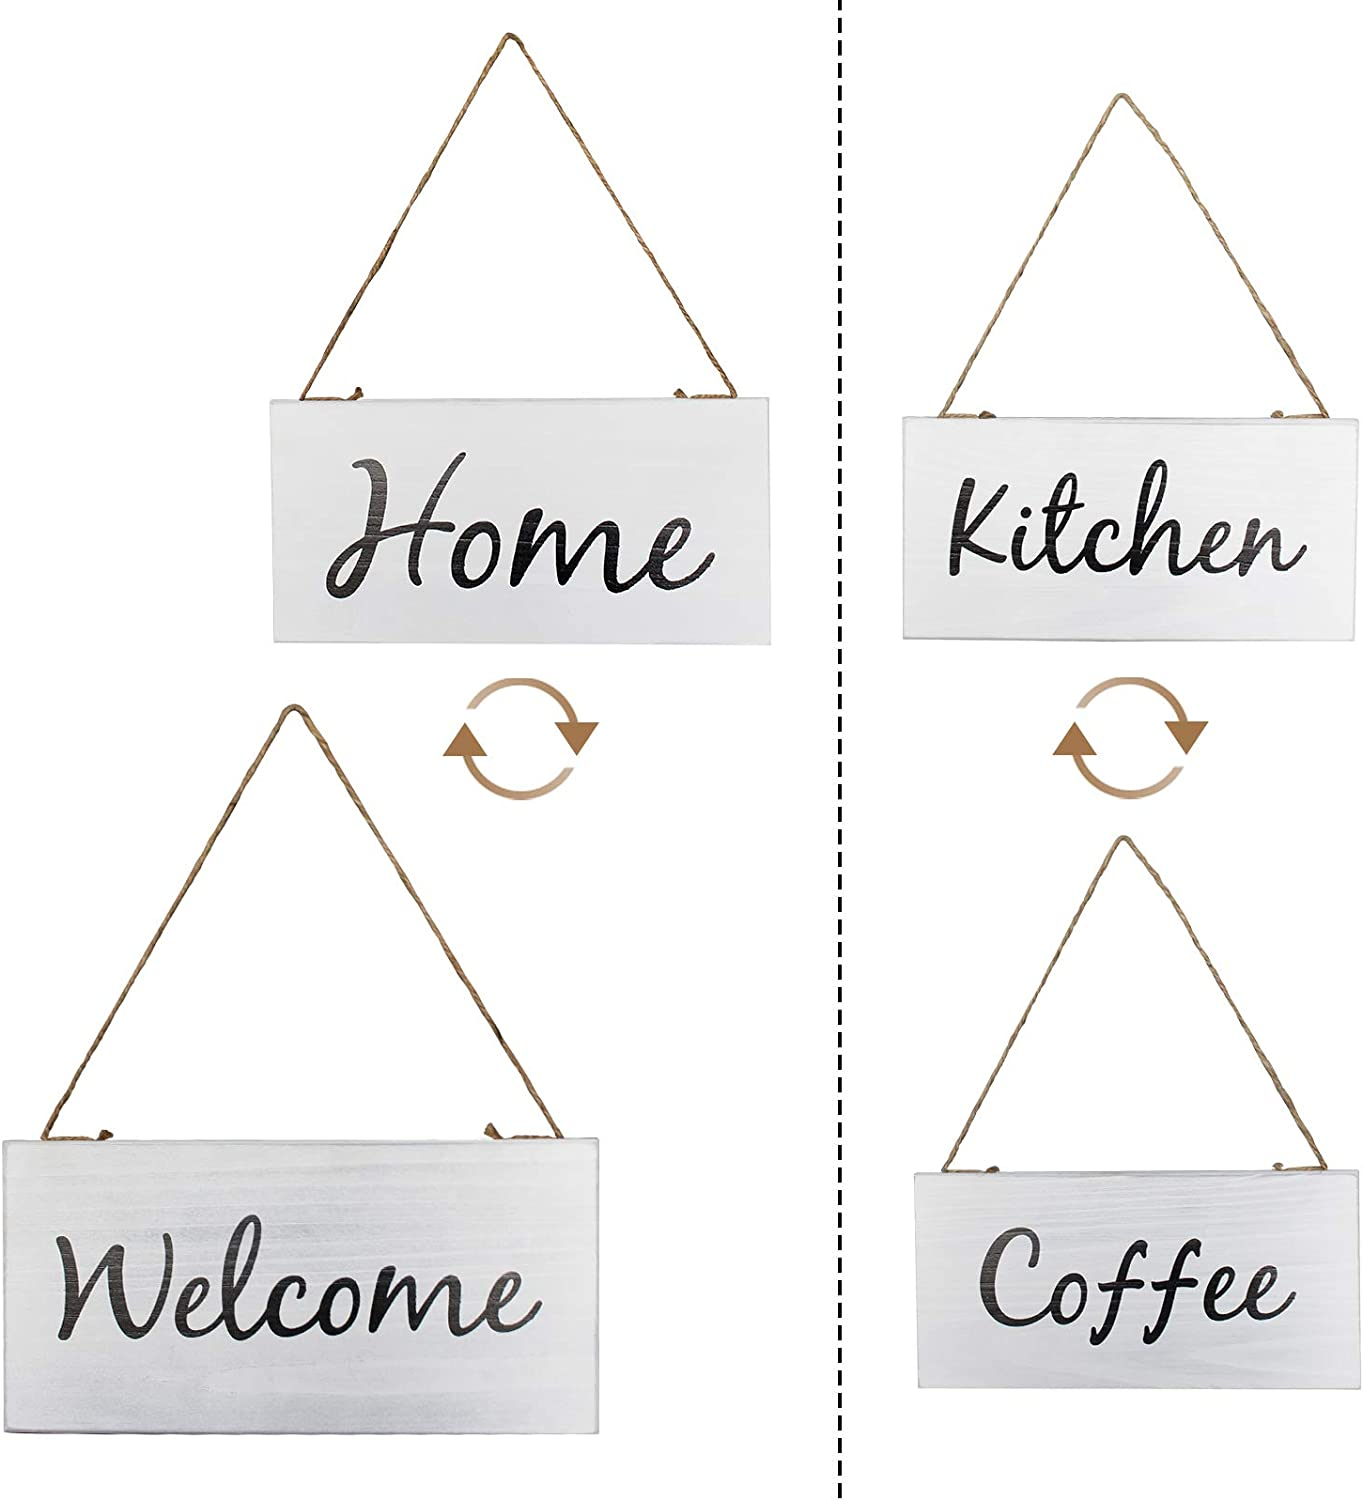 Y&ME YM Rustic Wood Wall Welcome Signs Set of 2, Reversible Sides Wooden Farmhouse Home or Welcome Sign, Restaurant, Kitchen or Coffee Sign, Wood Hanging Sign for Door